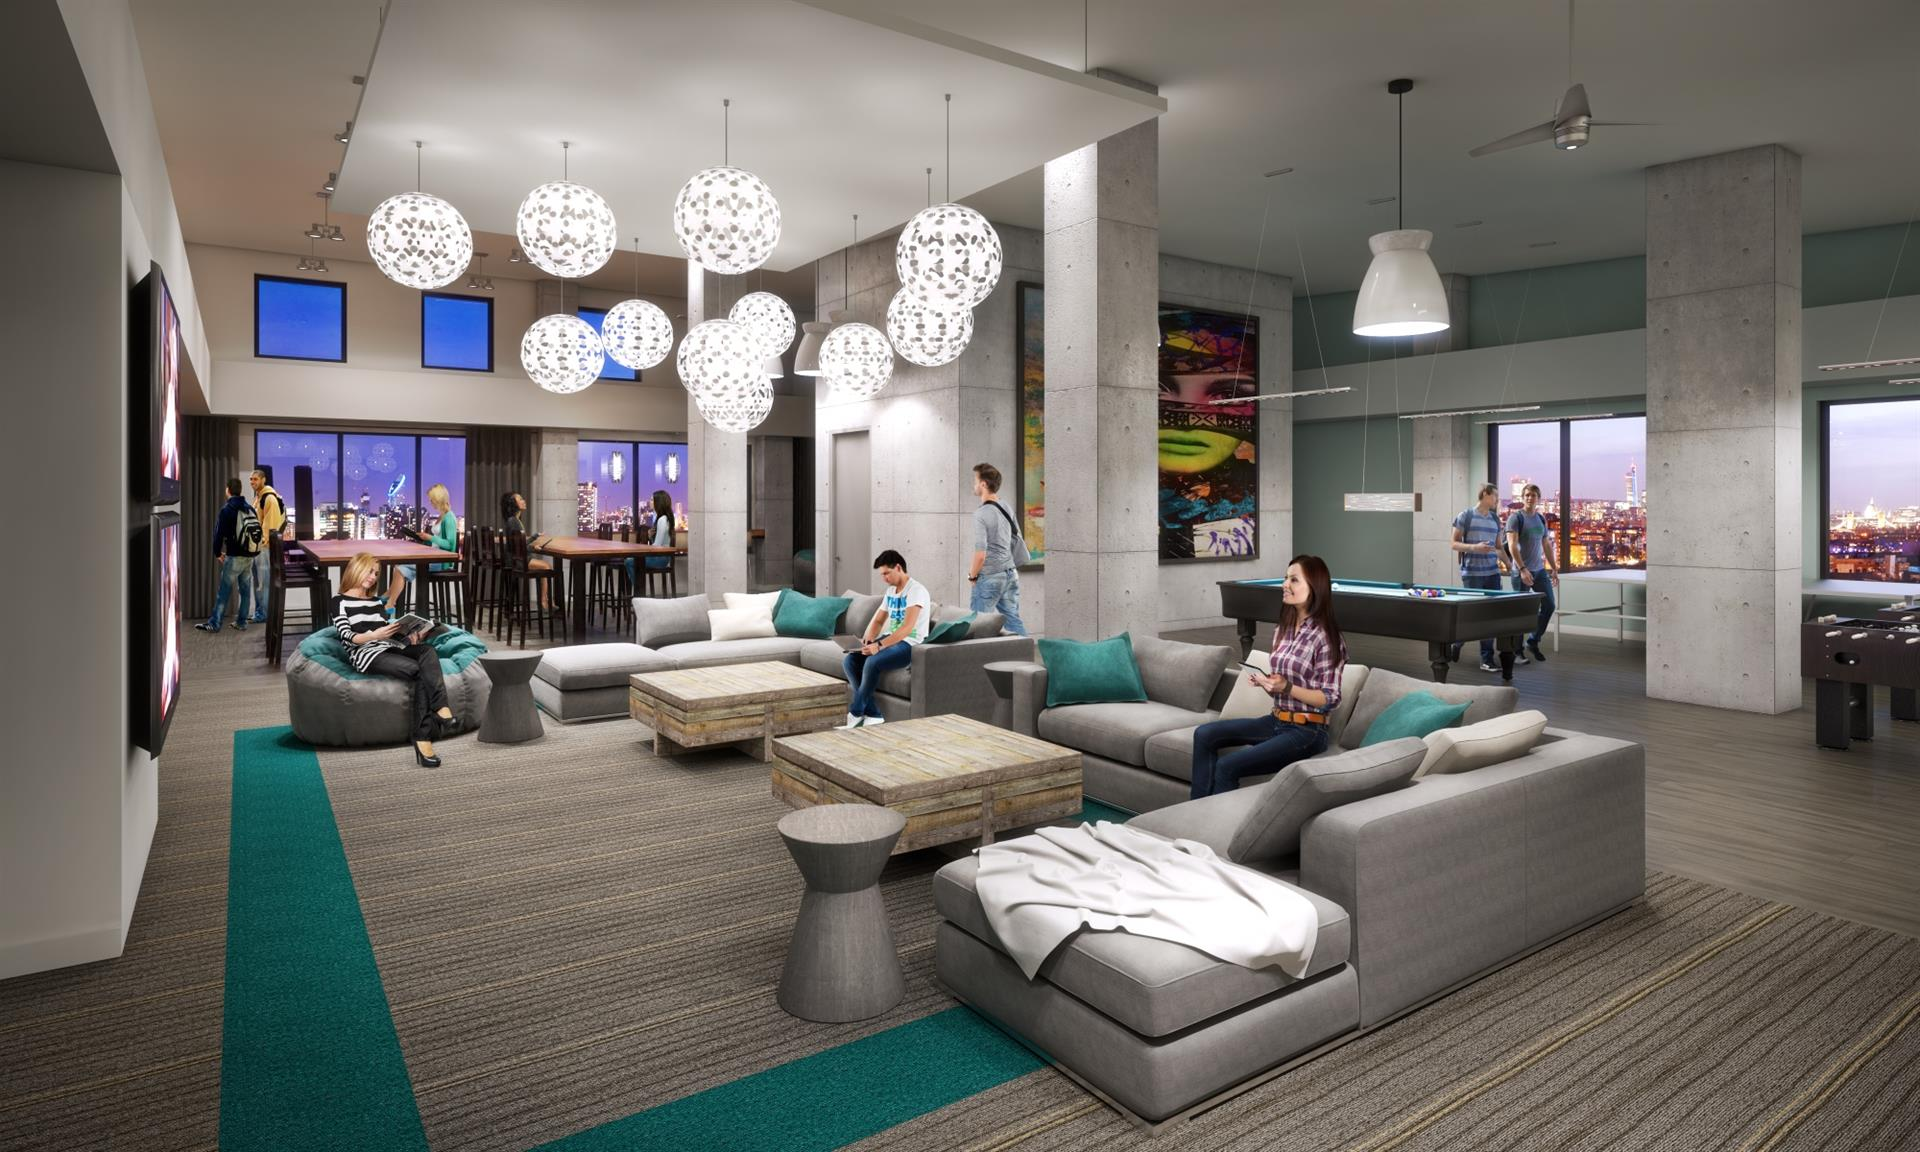 Capital Hall Condos caters to university students in Ottawa Image